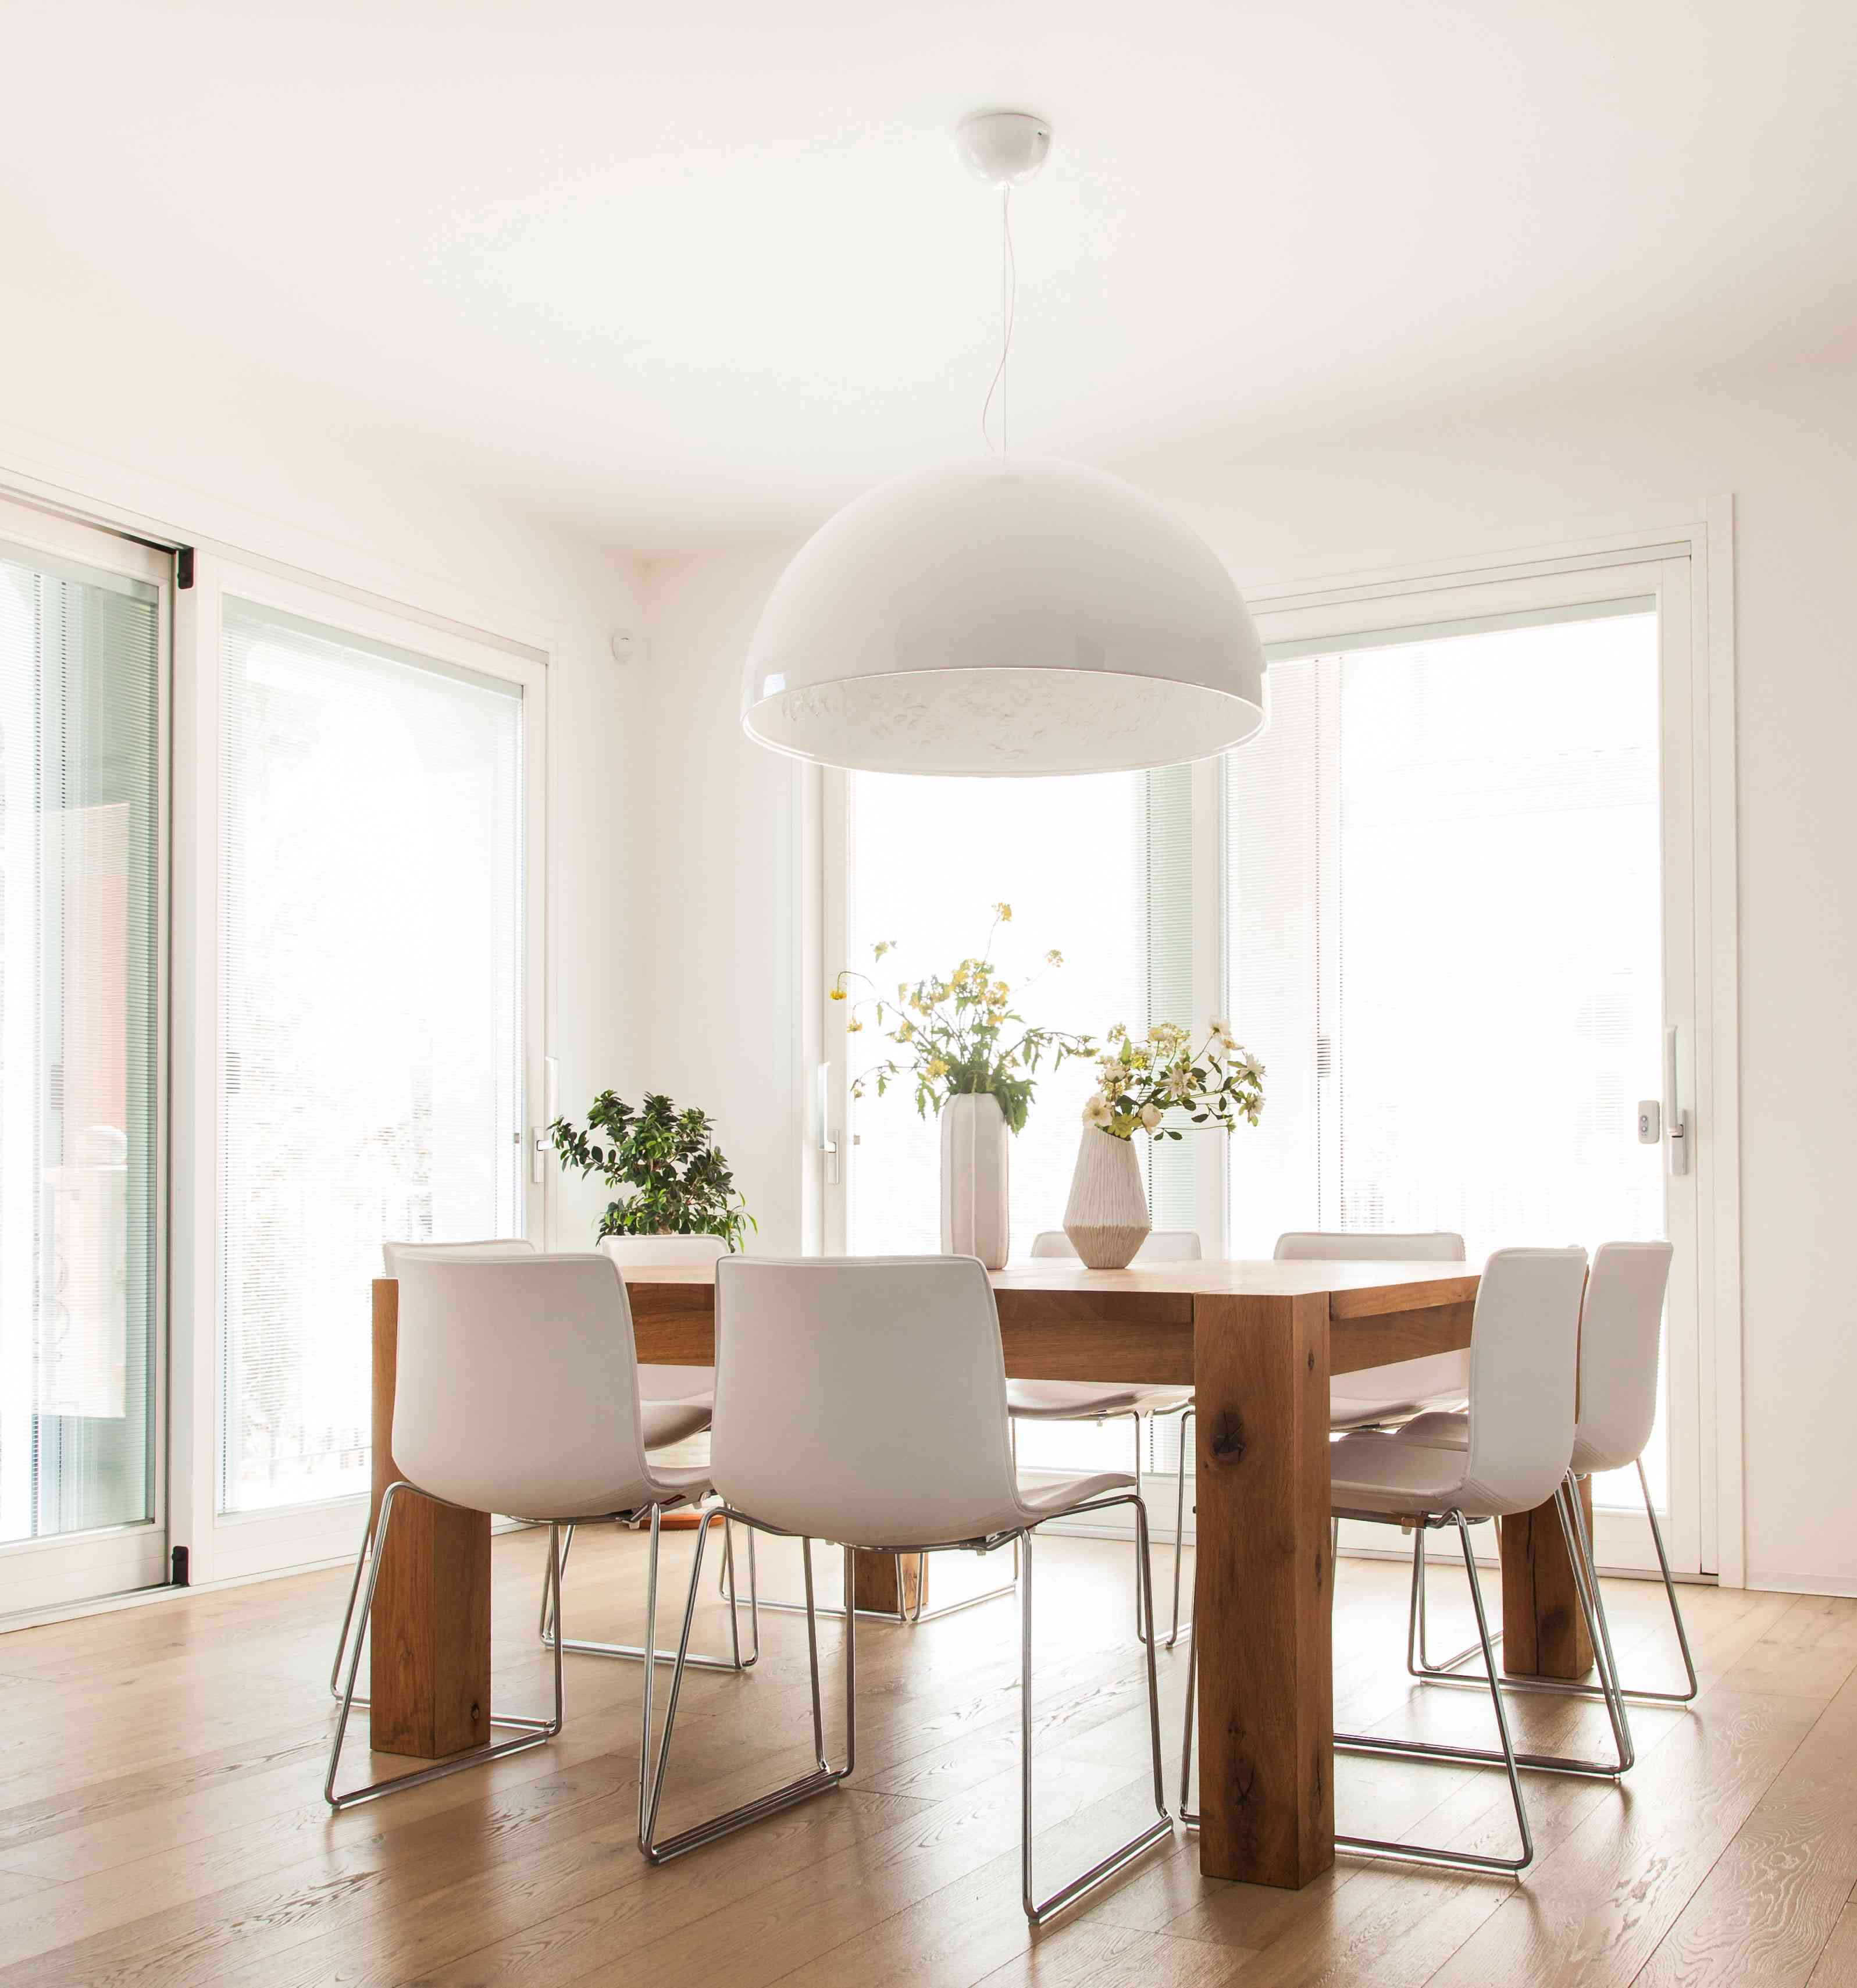 Skygarden Modern Hanging Lamps Dining Room